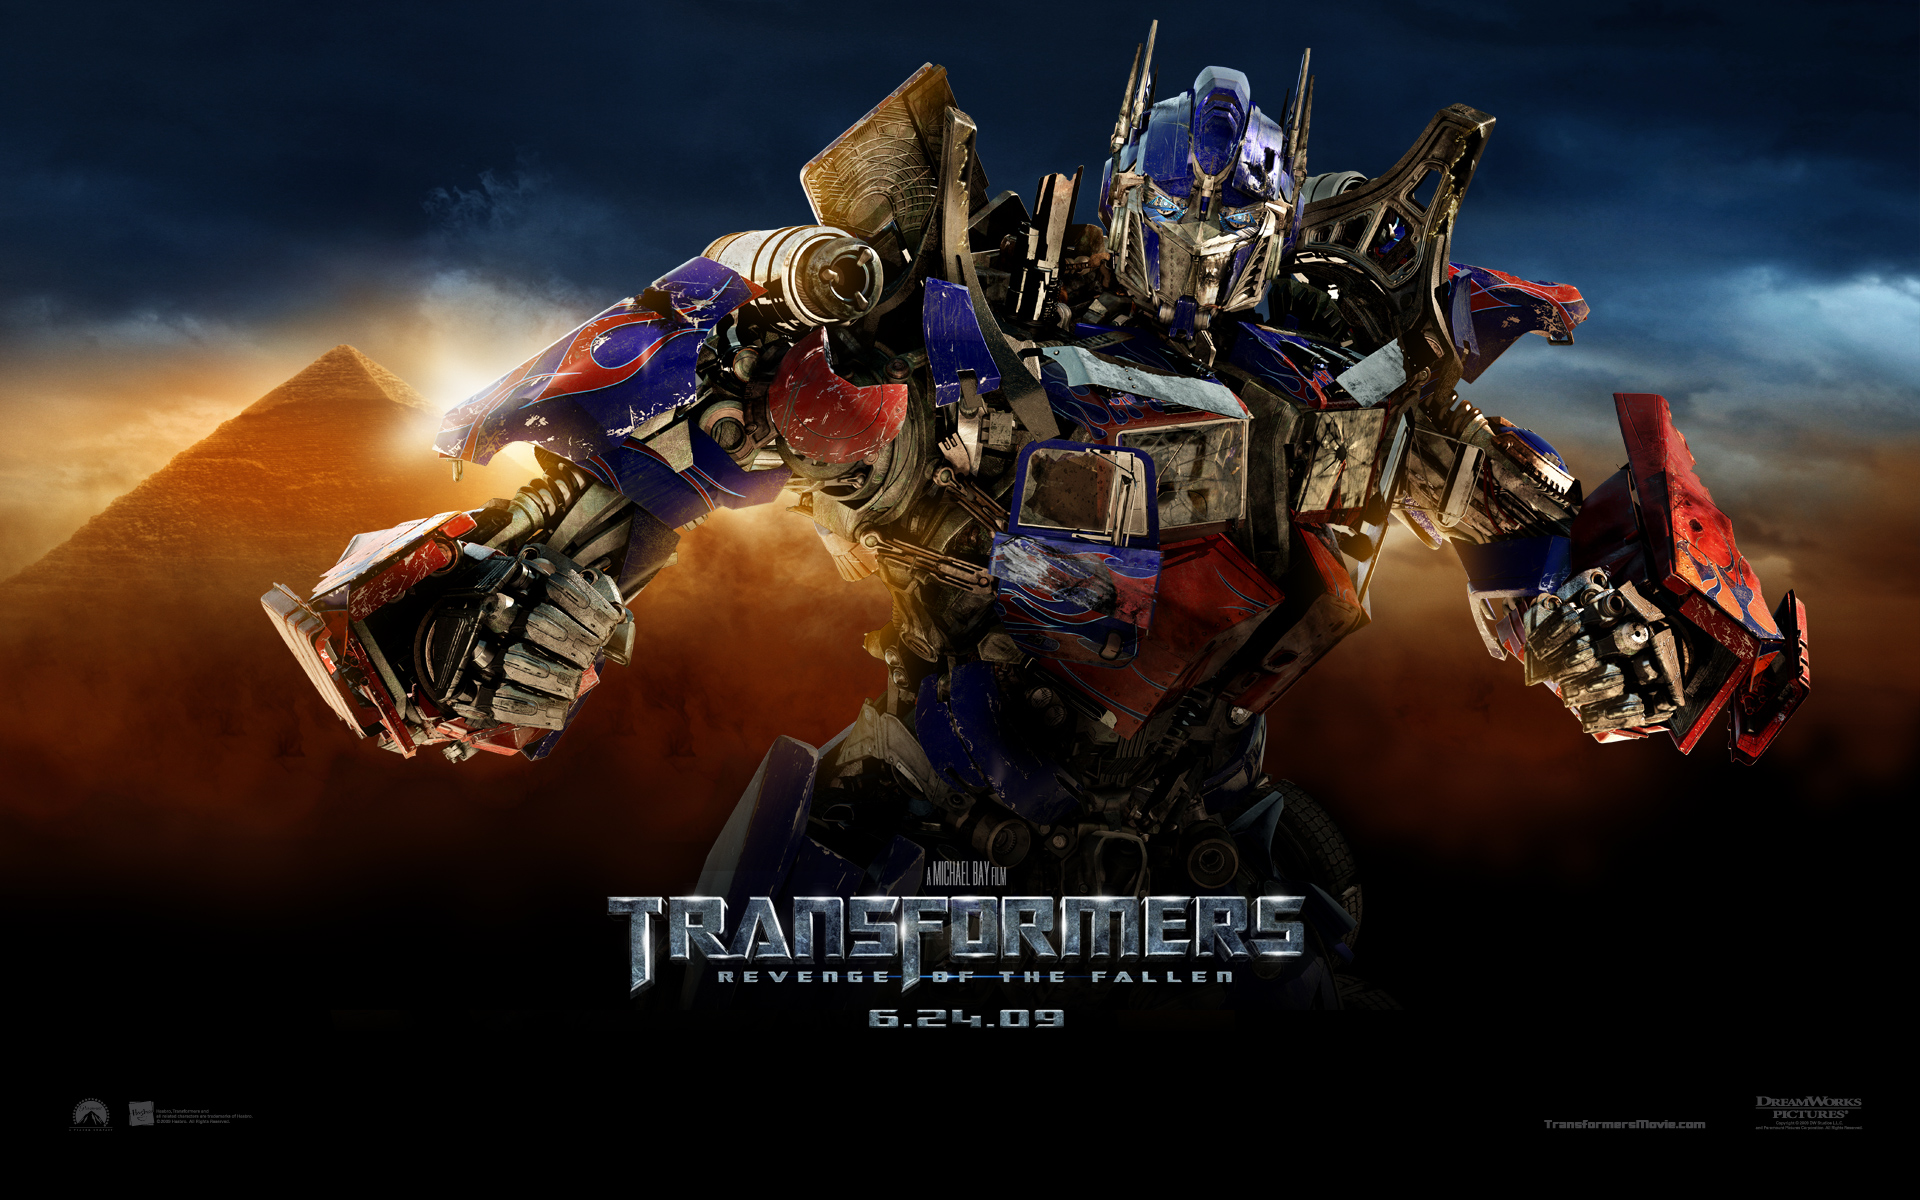 Transformers 2 Images HD Wallpaper And Background Photos